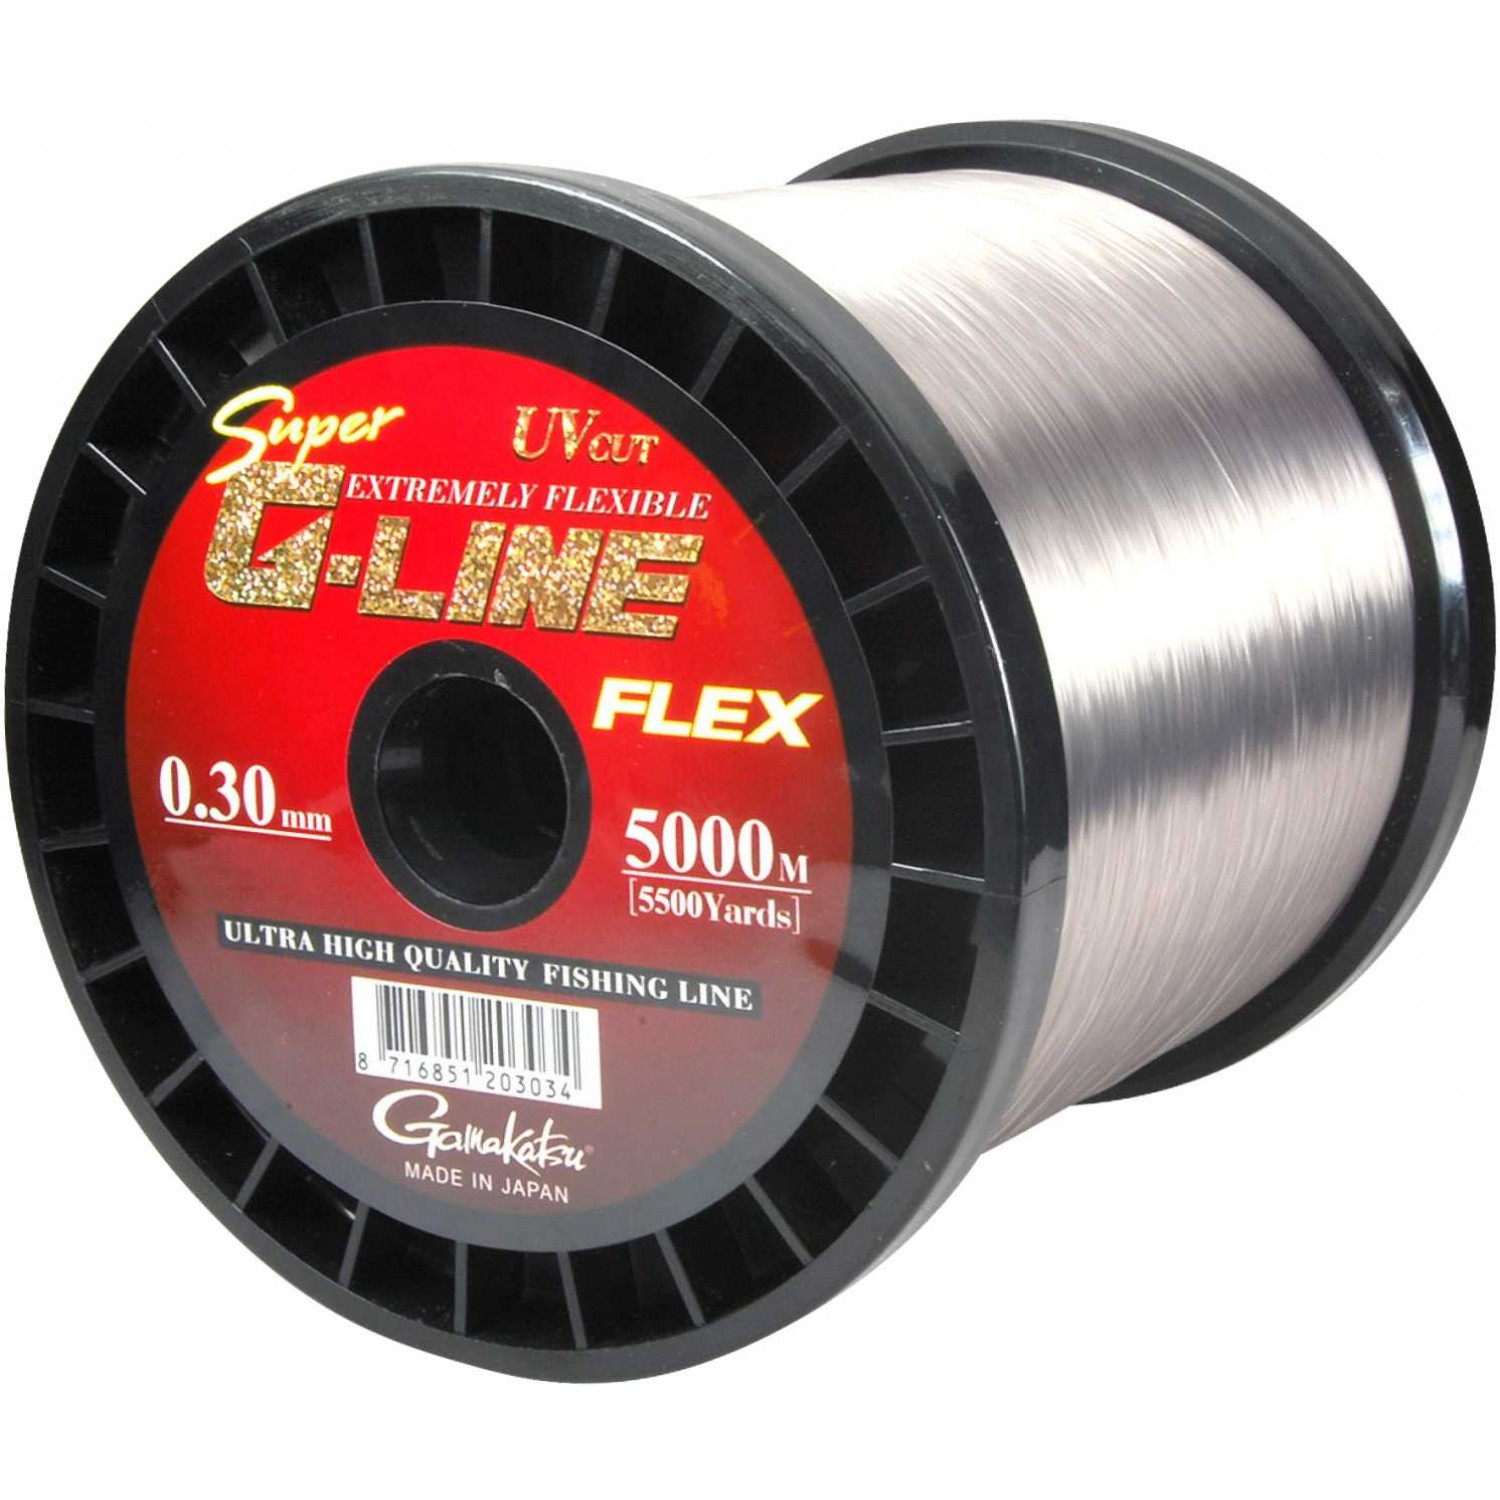 monofilament line Grey green Stroft Super 200m